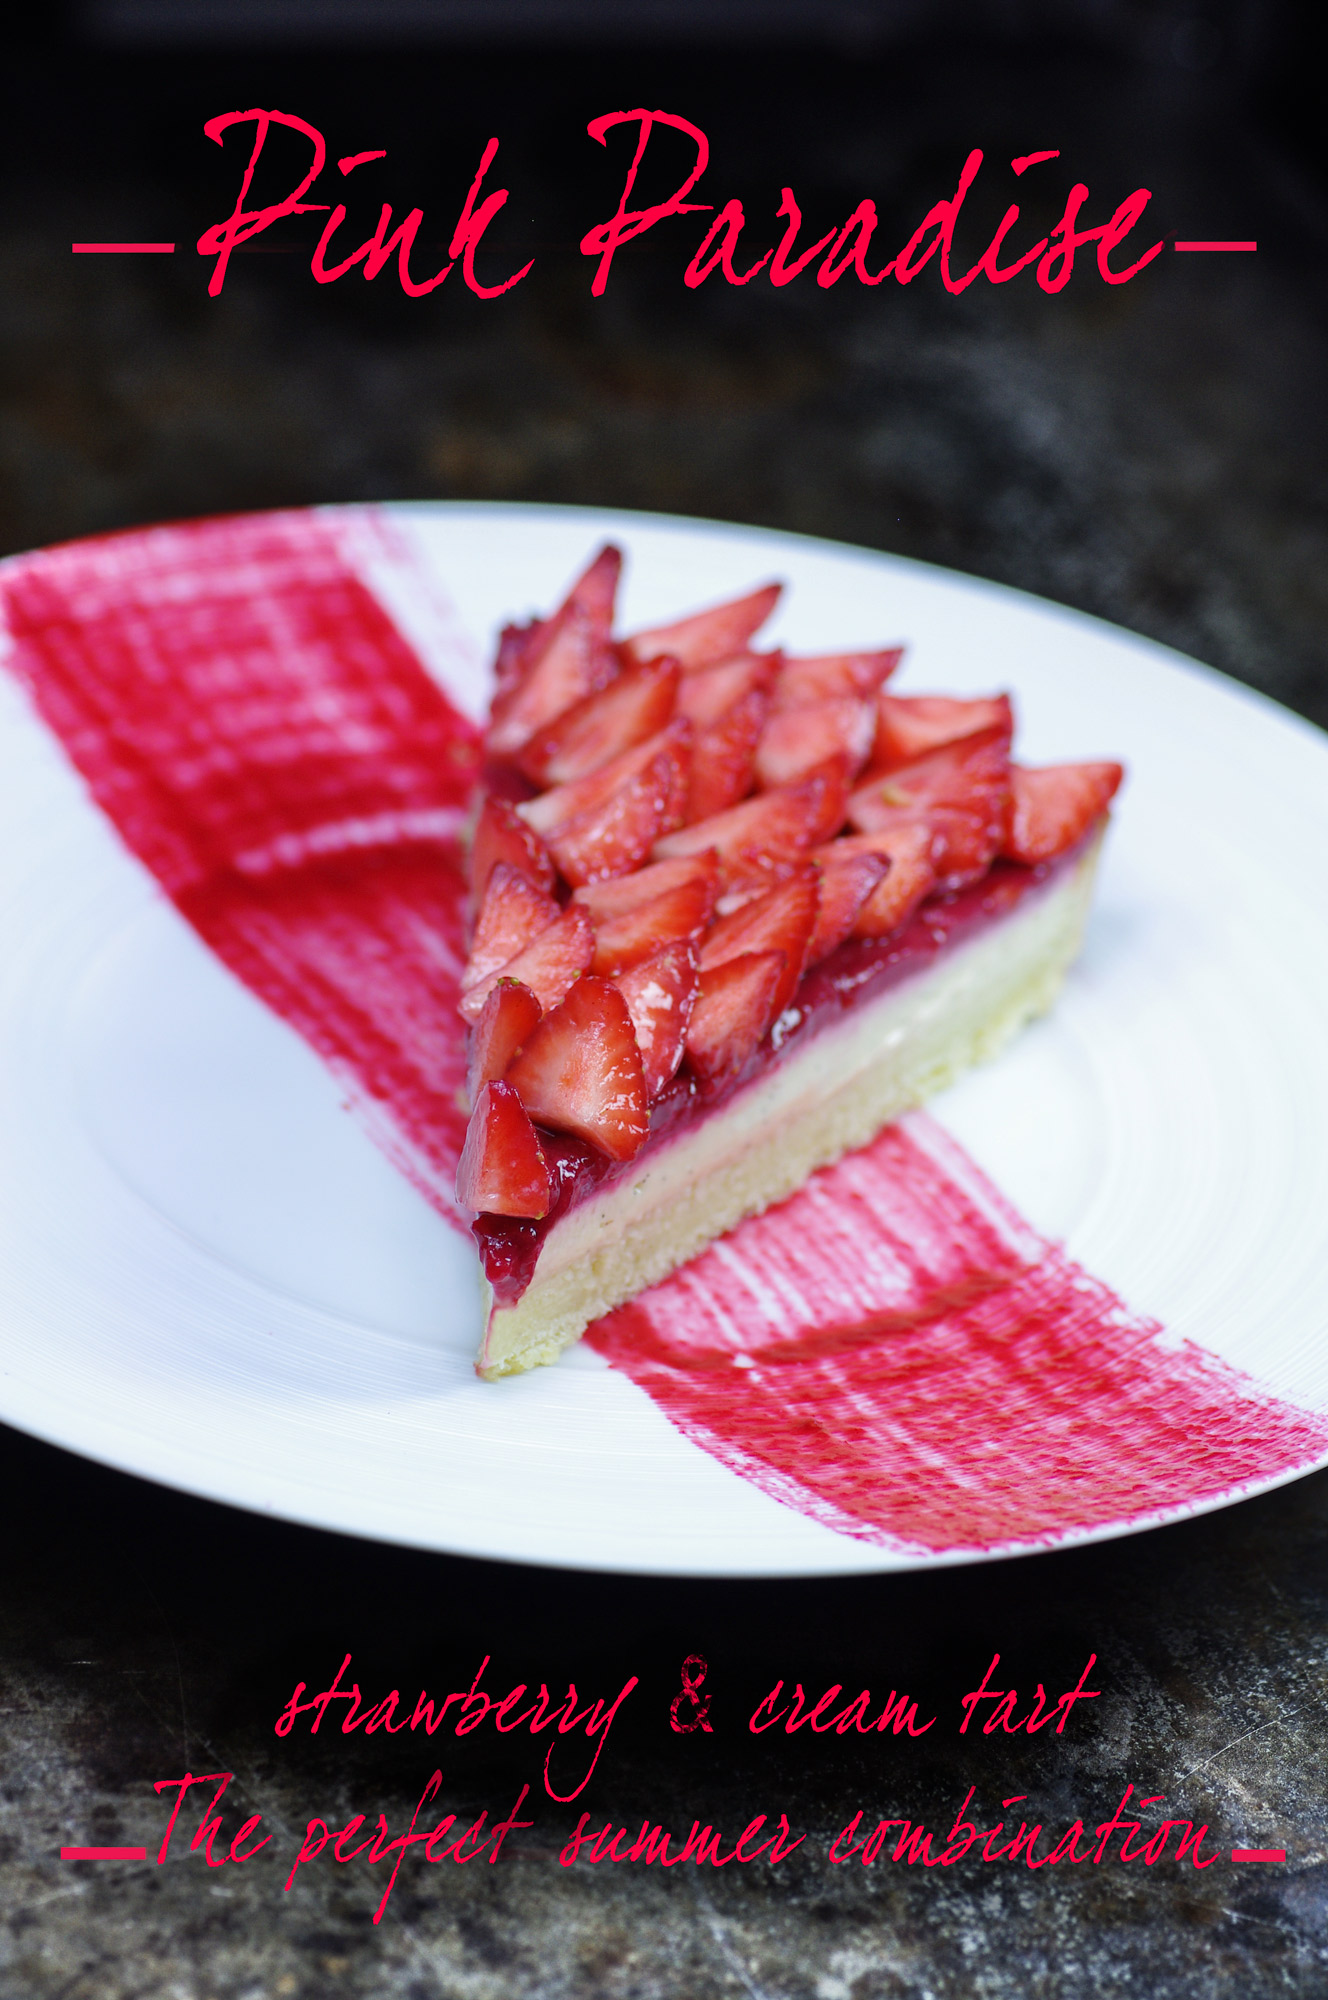 cheesecake, coco, citron vert, chavouoth, shavouhot, kosher, jewish, recipe, lime, cream cheese, blog, blogger, delicious, food, shavoutoh, philadefia, cream cheese, strawberry, fraise, lager, light,tarte, tarte au fraise, fraise